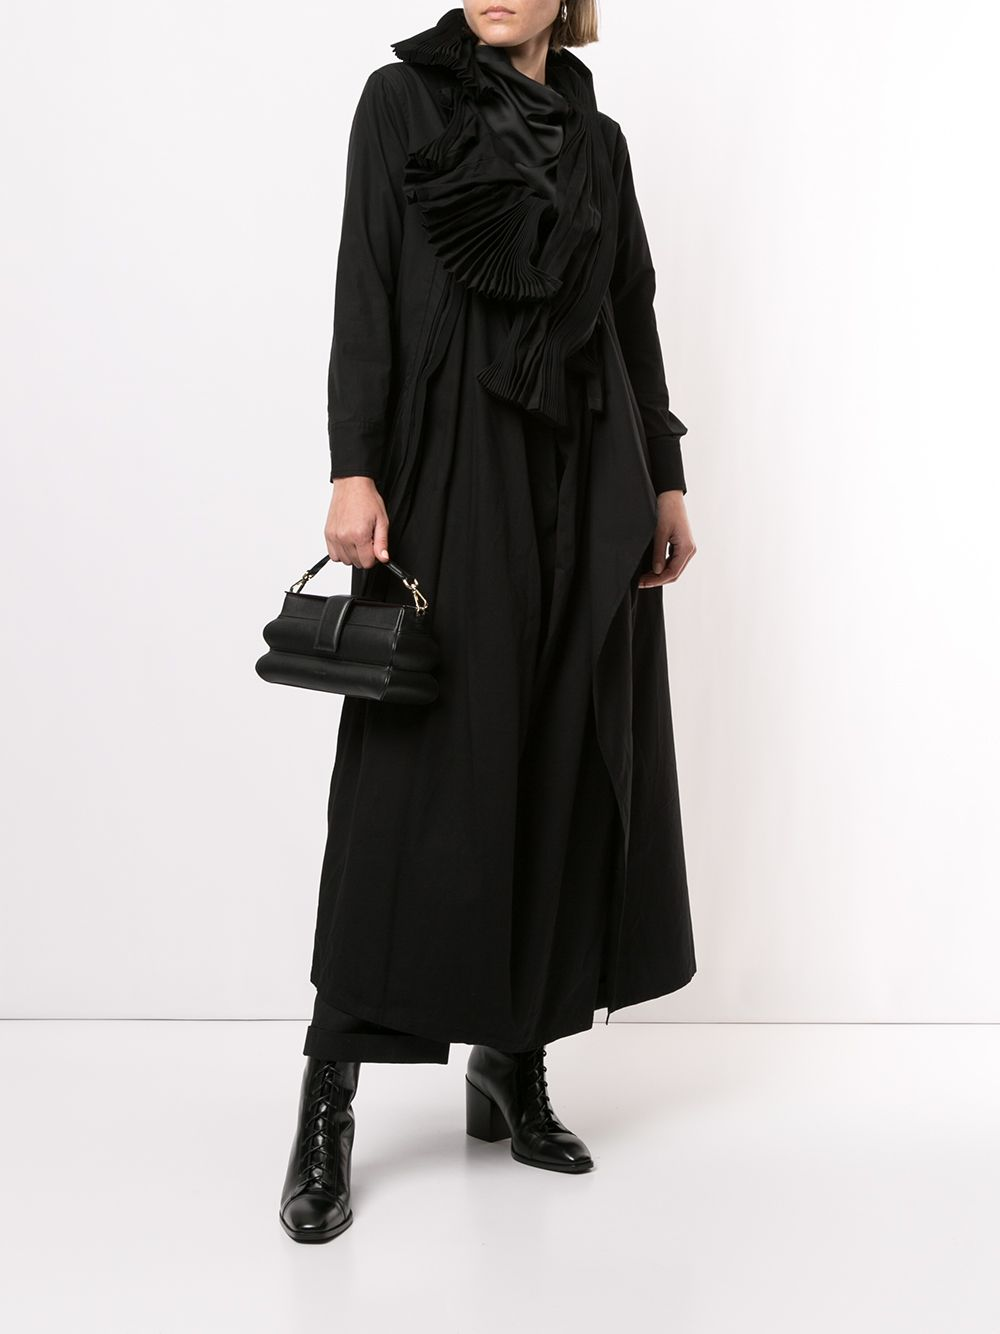 YOHJI YAMAMOTO WOMEN PLEATS SHIRT DRESS